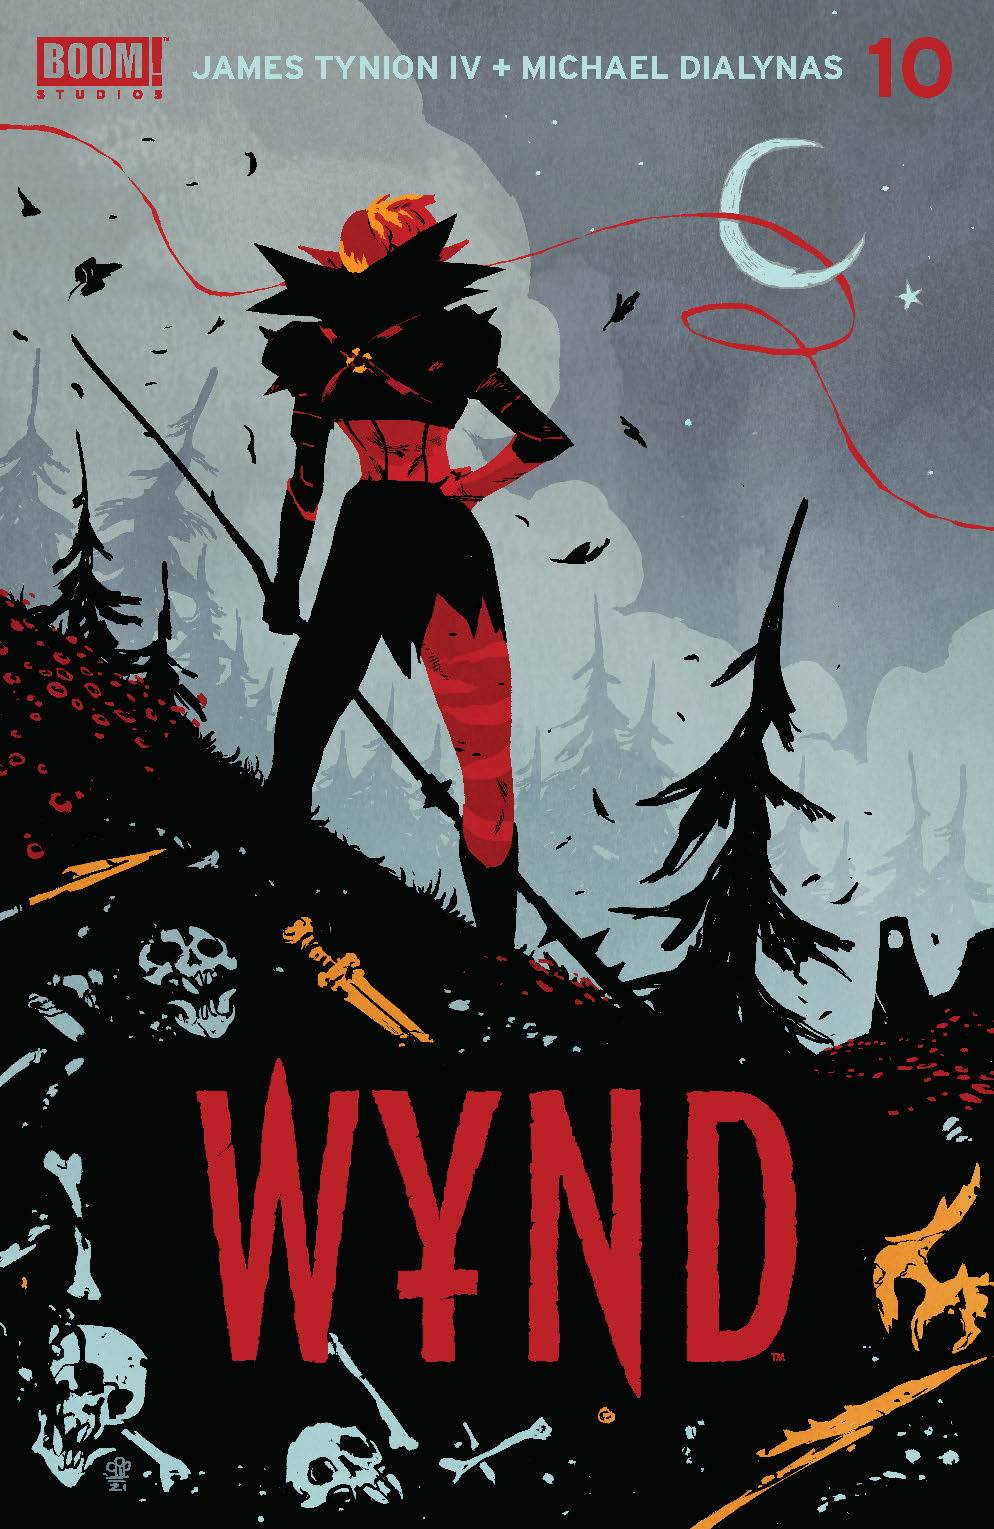 Wynd #10 (Cover A Dialynas) from Wynd by James TynionIv published by Boom!  Studios @ ForbiddenPlanet.com - UK and Worldwide Cult Entertainment  Megastore